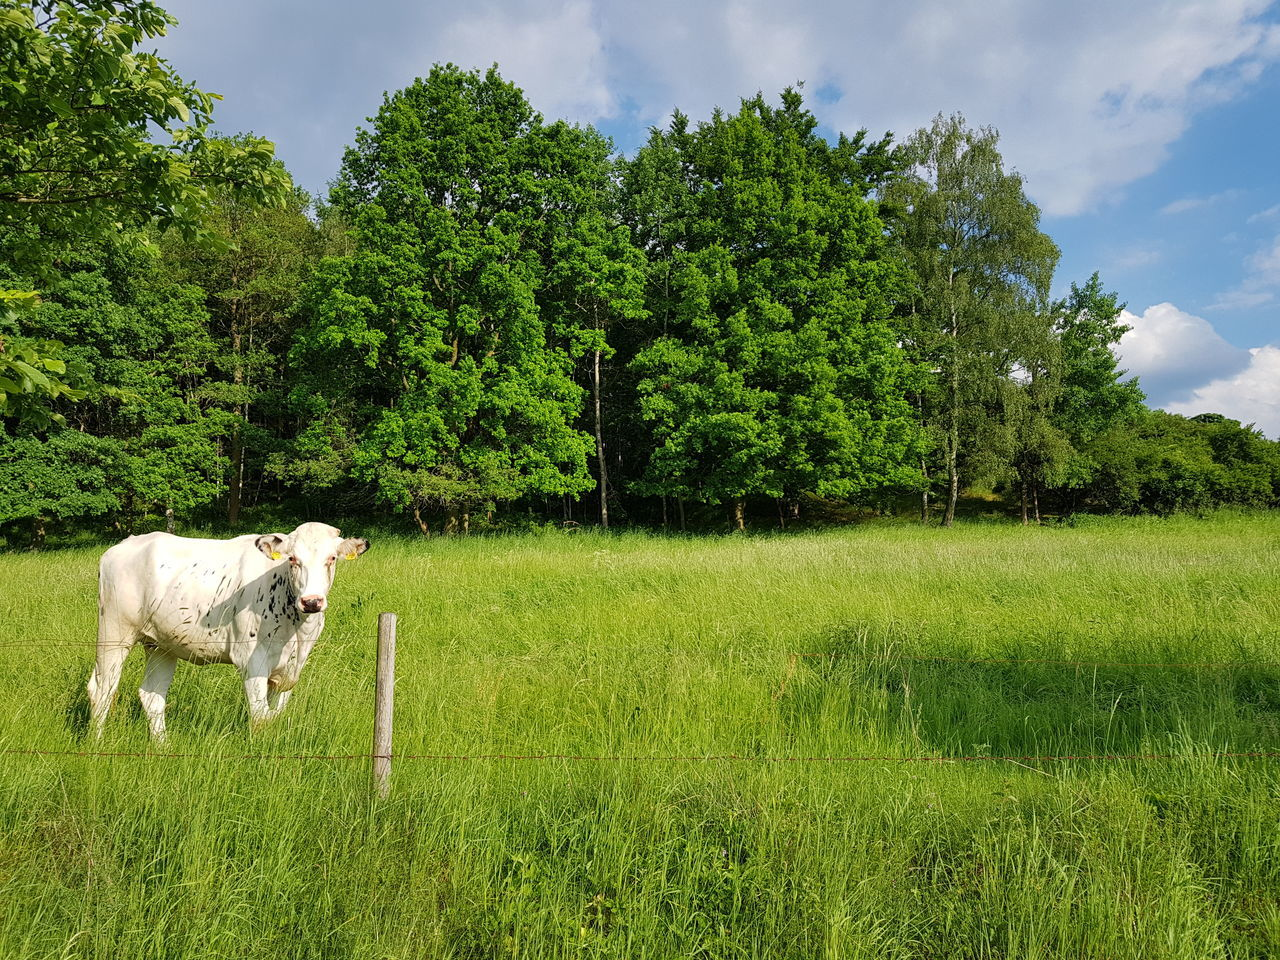 tree, field, green color, grass, nature, growth, sky, cow, no people, landscape, outdoors, domestic animals, green, mammal, day, cattle, tranquility, beauty in nature, livestock, animal themes, one animal, agriculture, rural scene, farm animal